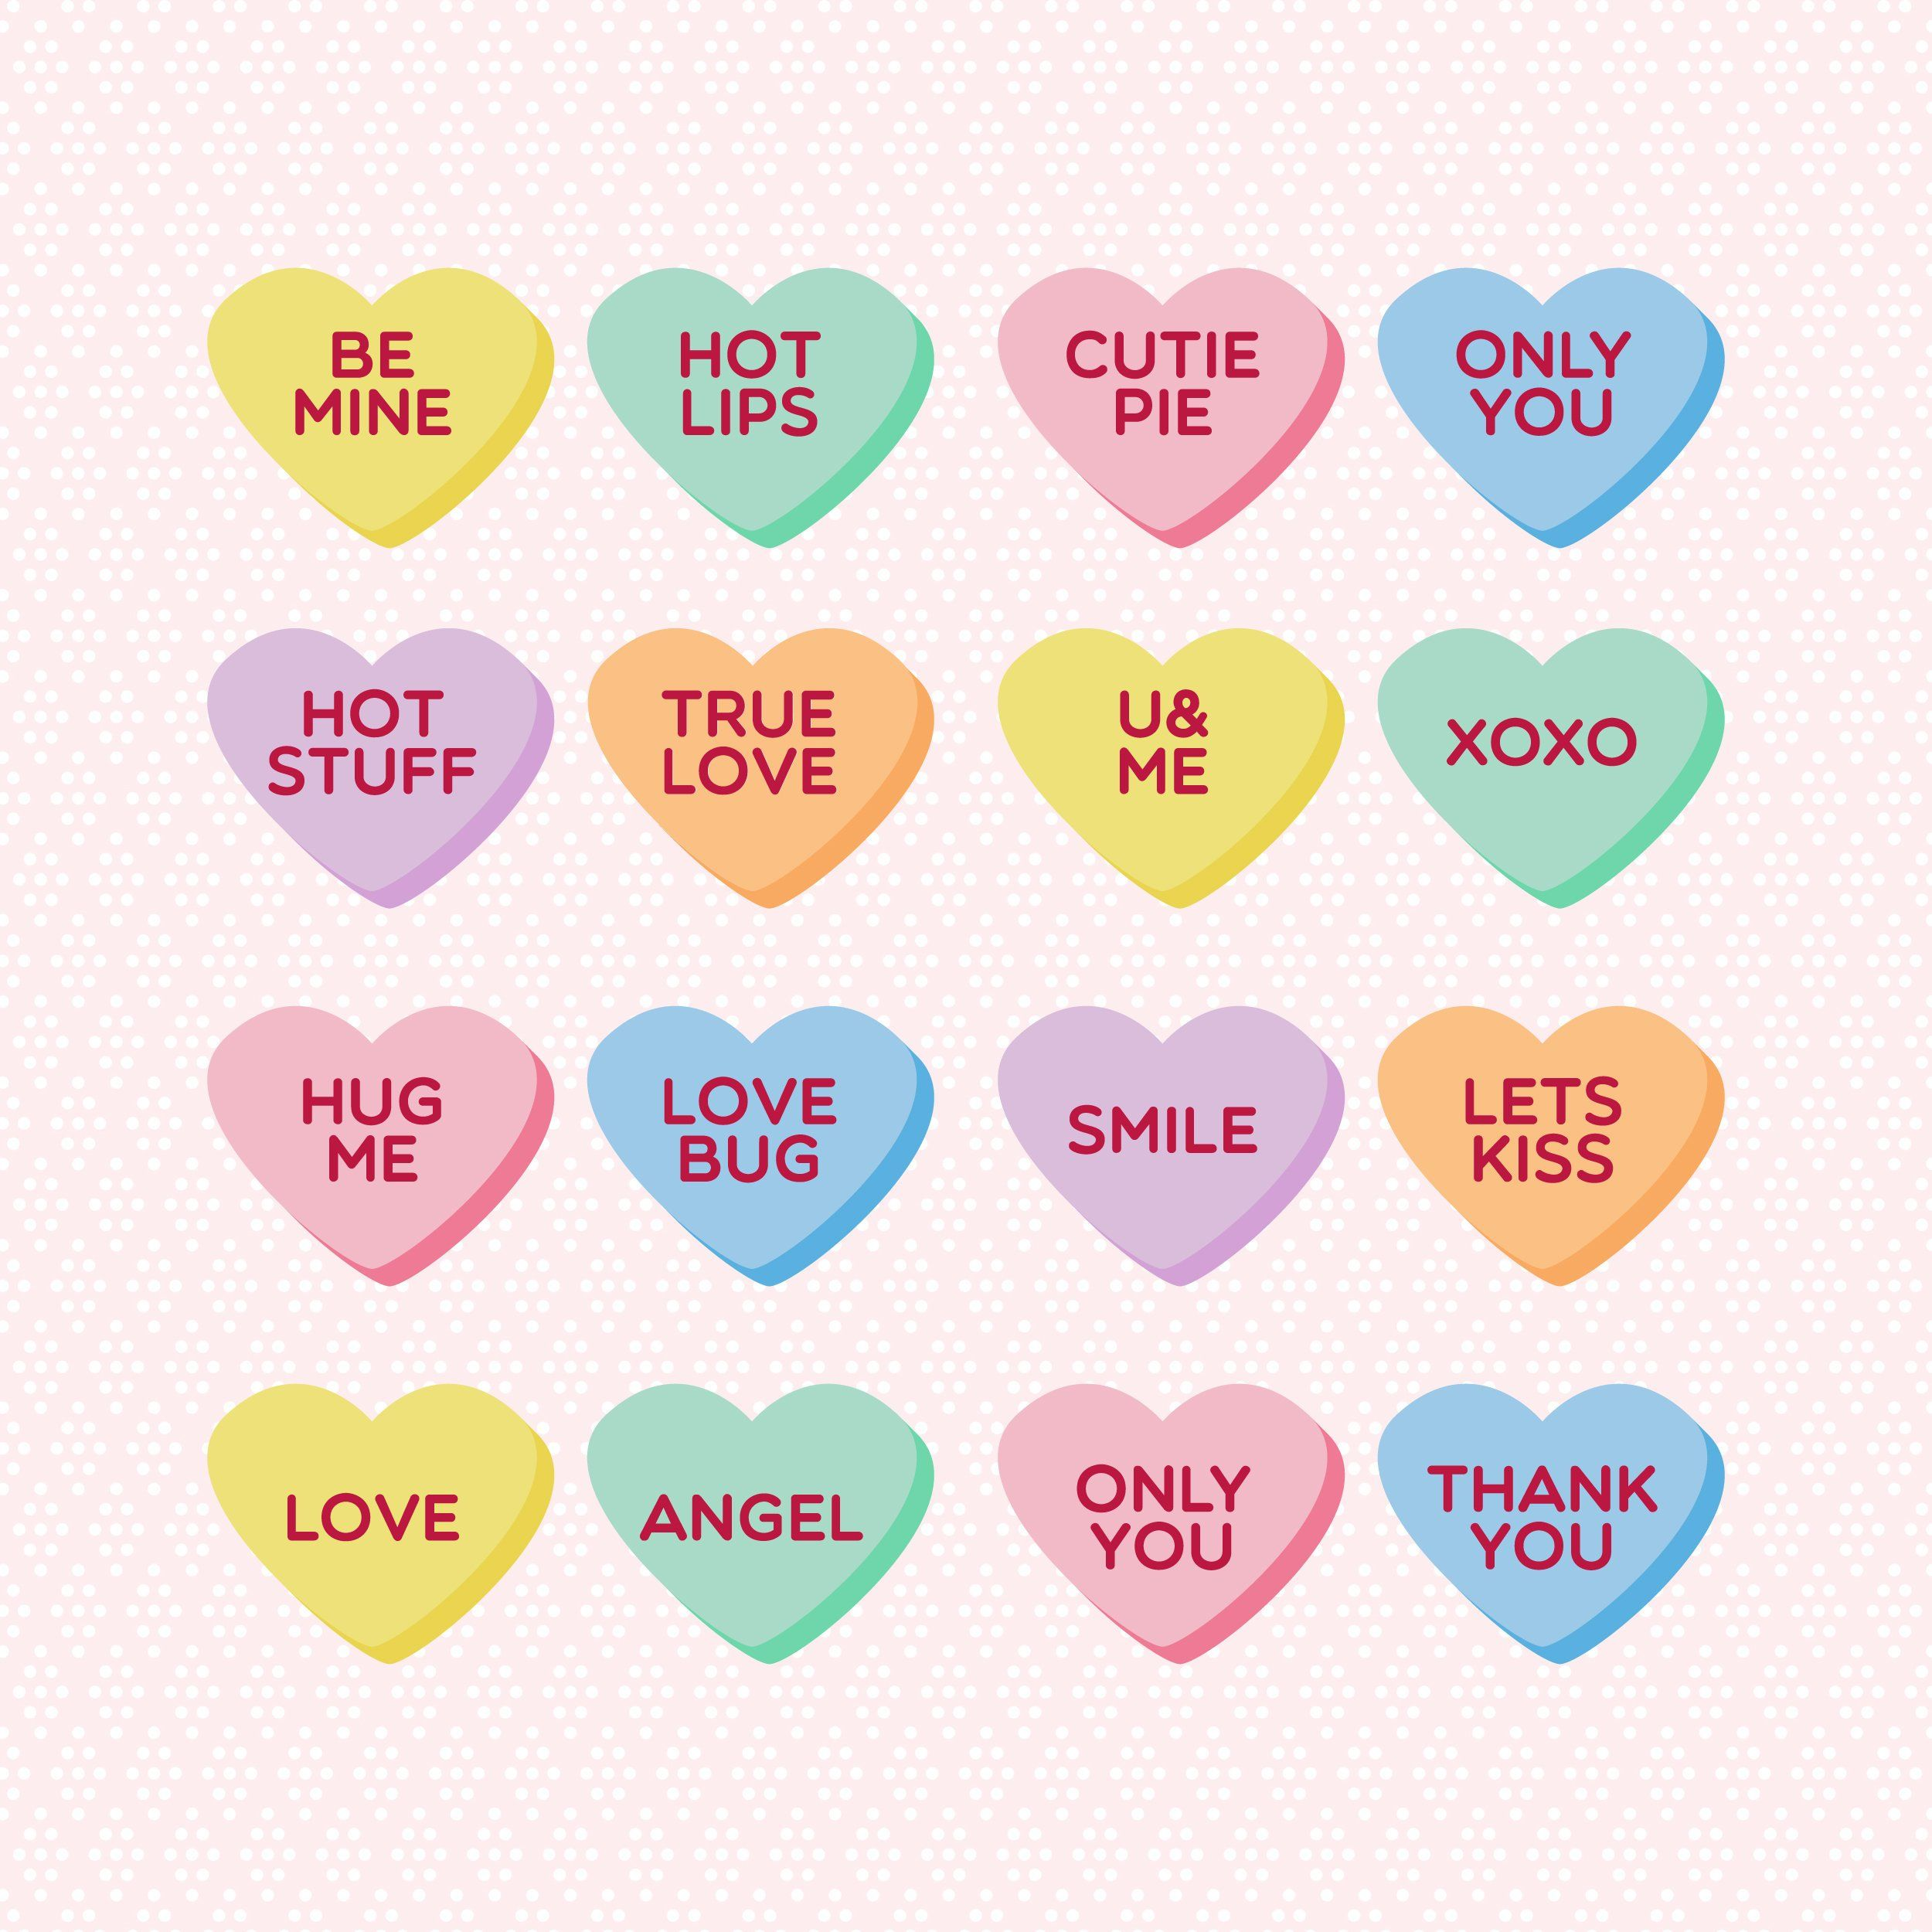 Pin By Paola Palma On V Day Valentine Candy Hearts Valentine Candy Bts Aesthetic Wallpaper For Phone